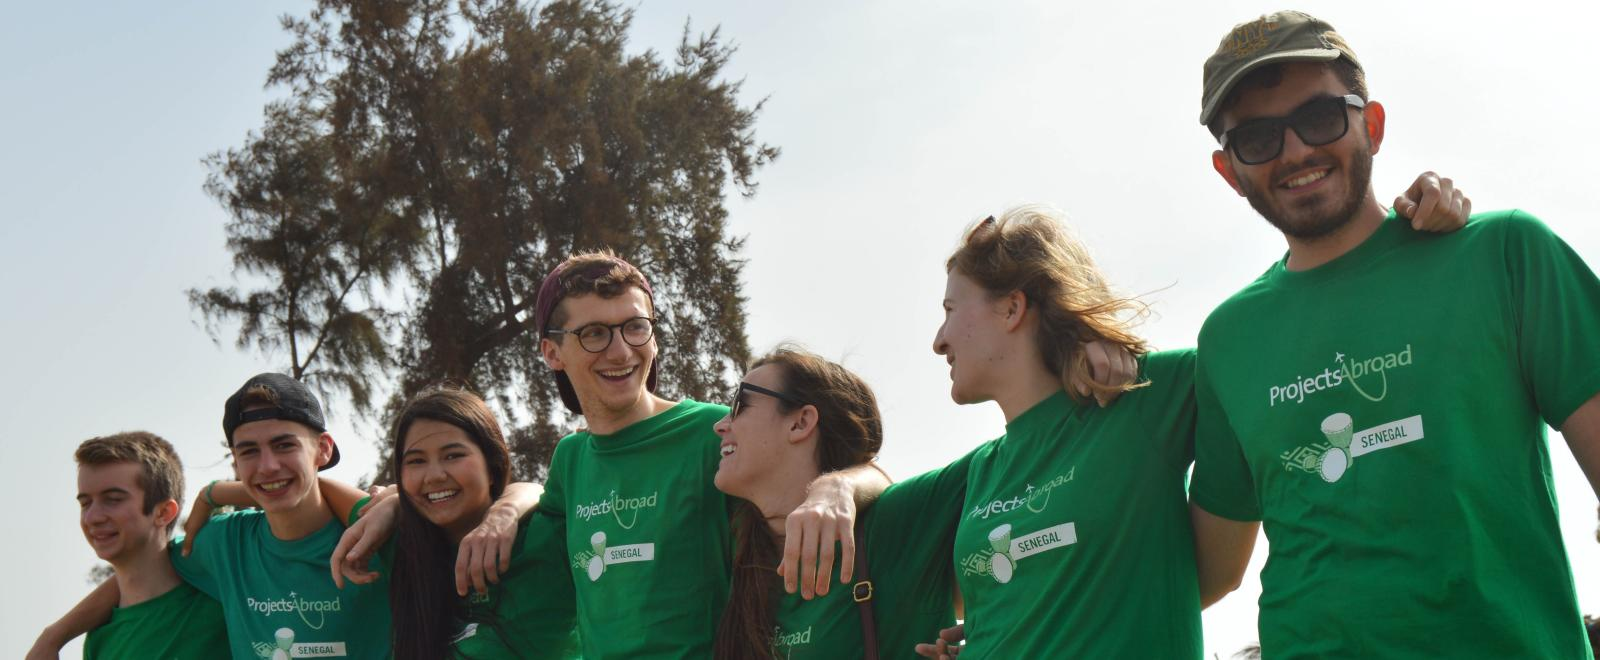 Group of volunteers smiling and enjoying their project abroad